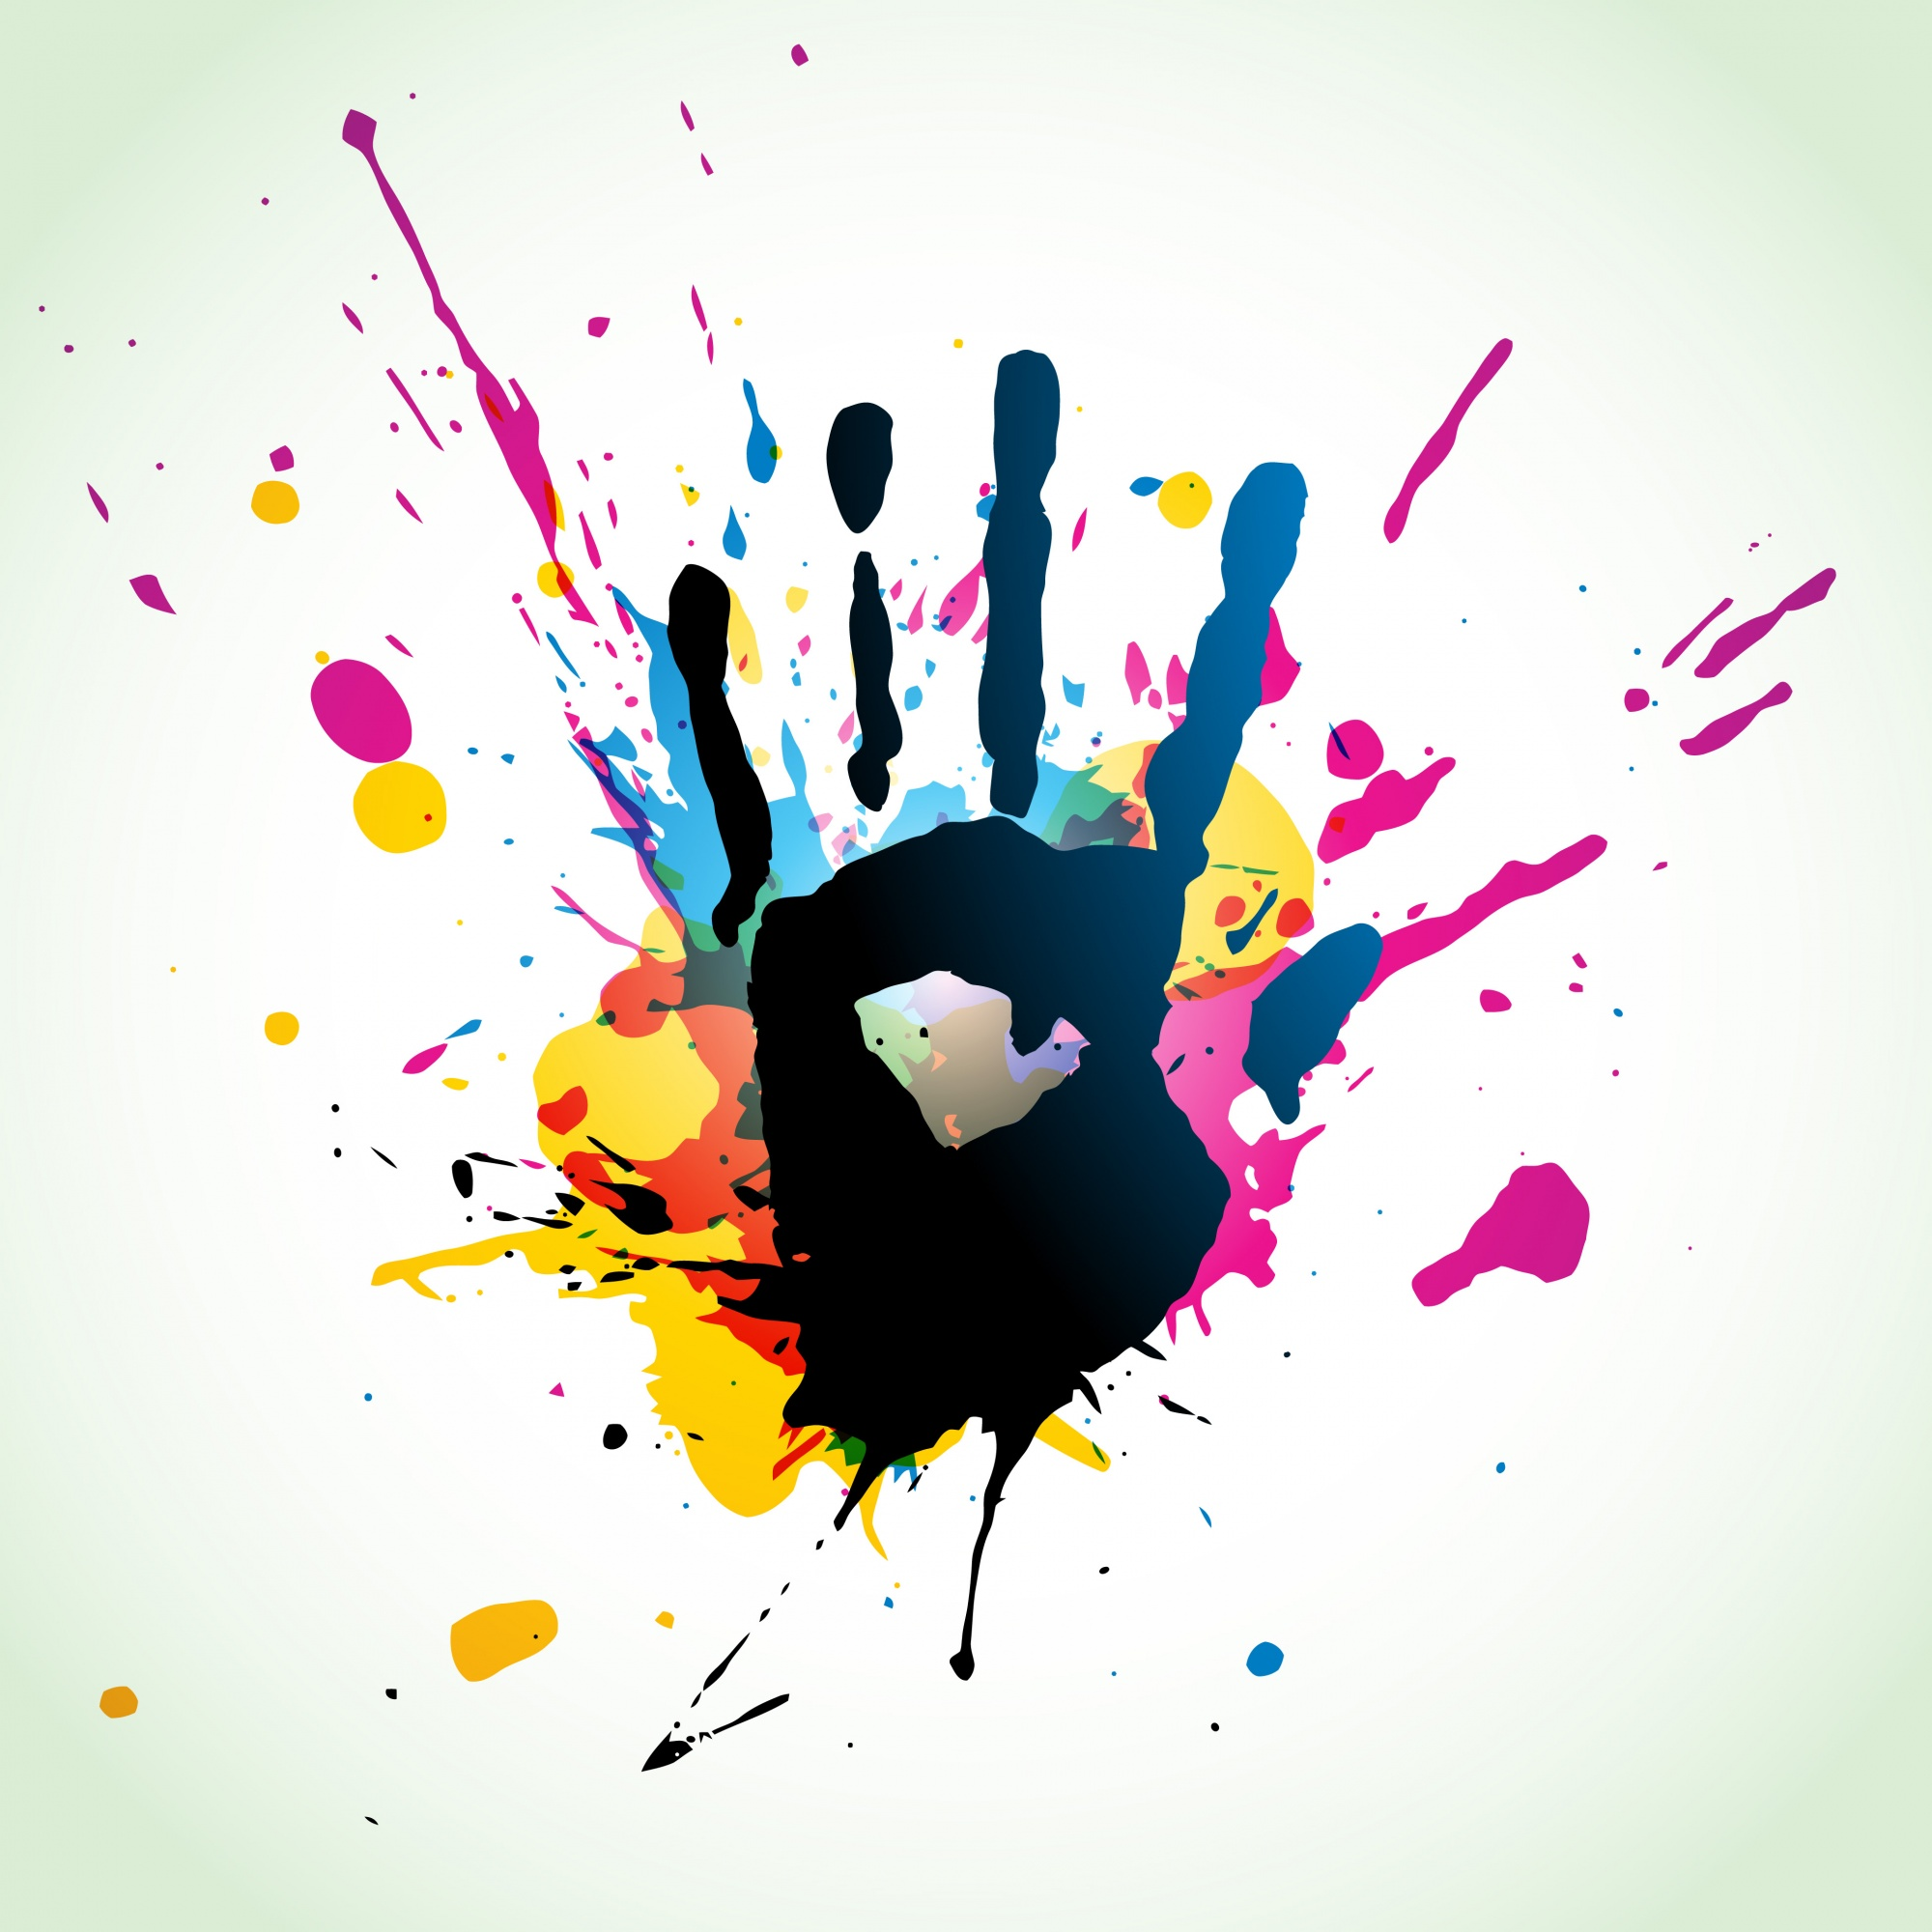 Grunge hand on paint splashes